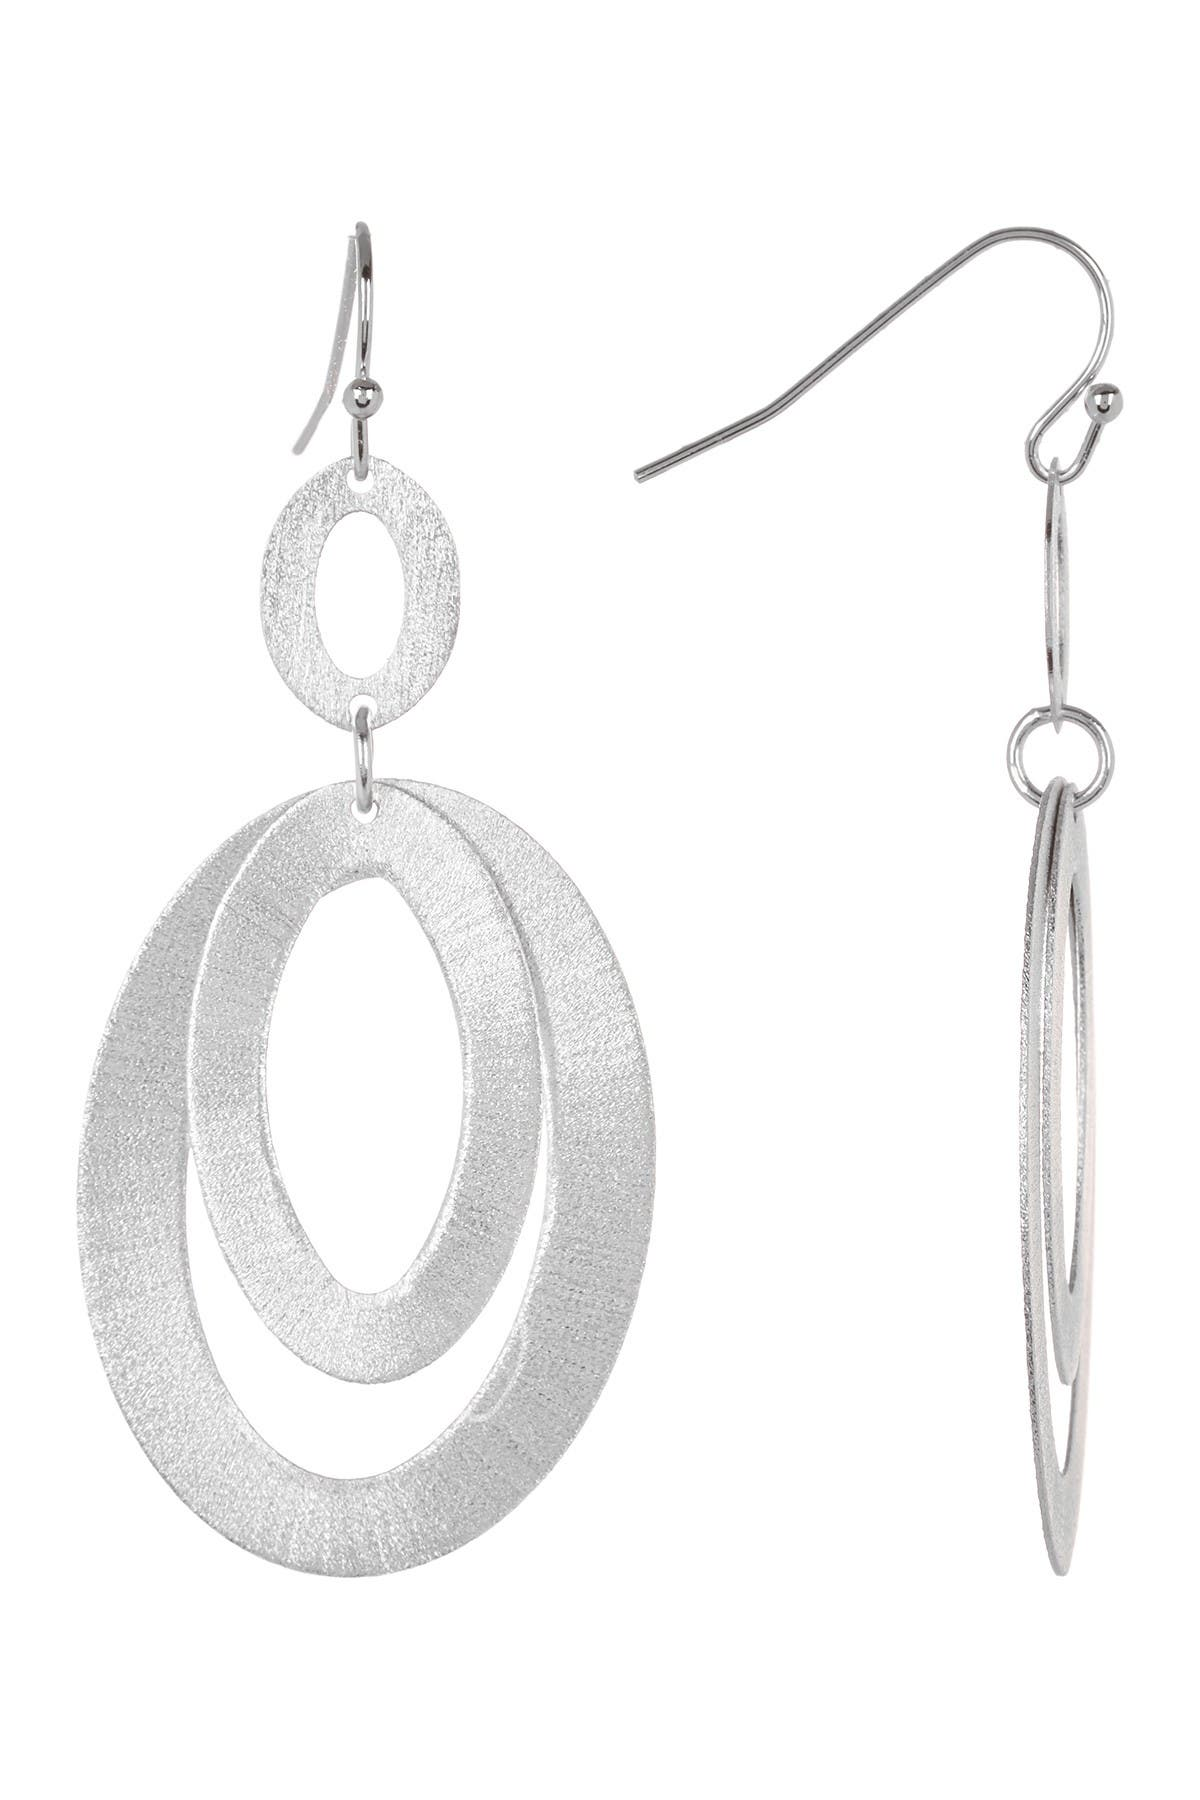 Image of Rivka Friedman White Rhodium Clad Layered Textured Oval Link Earrings